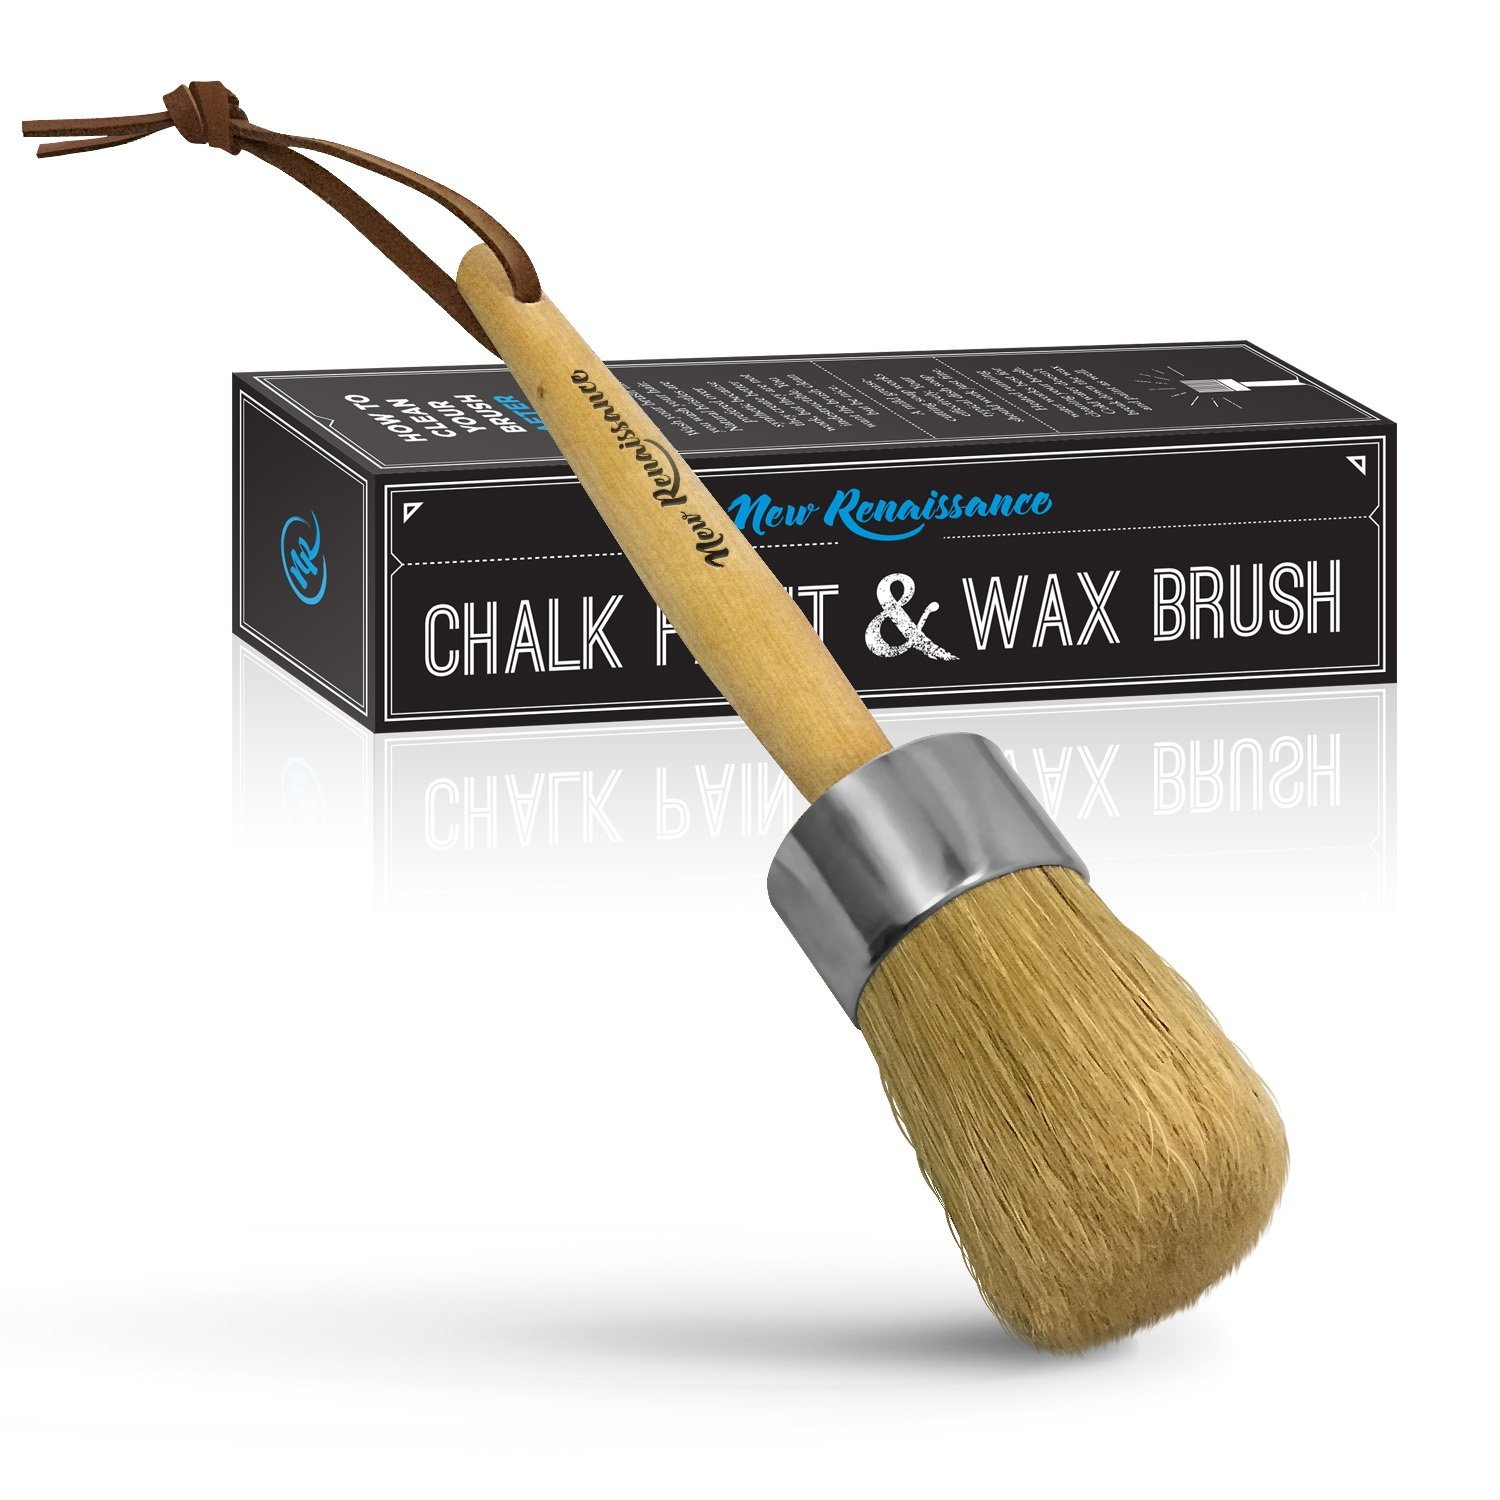 New Renaissance 4336890327 Professional Chalk Painting Annie Sloan Dark & Clear Soft Wax | Furniture, Stencils Folkart, Home Decor, Wood | Large Brushes with Natural Bristles, Pure by New Renaissance